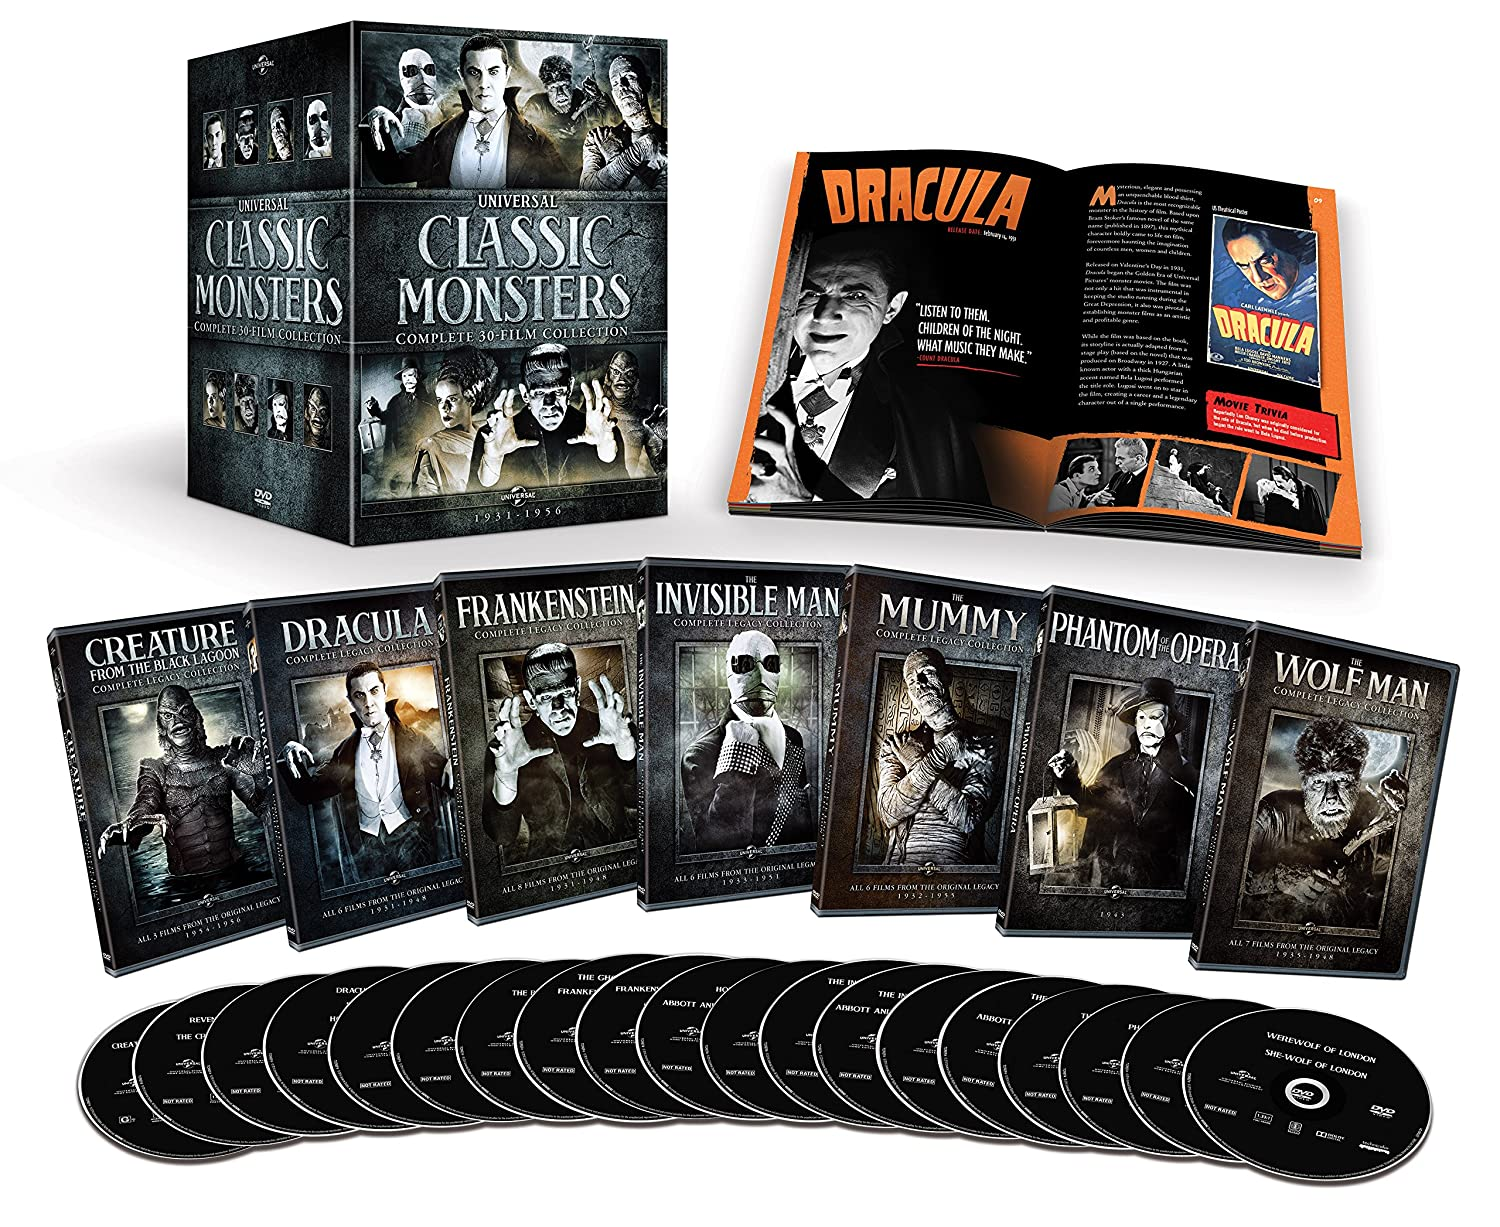 Amazon.com: Classic Monsters (Complete 30-Film Collection): Bela ...